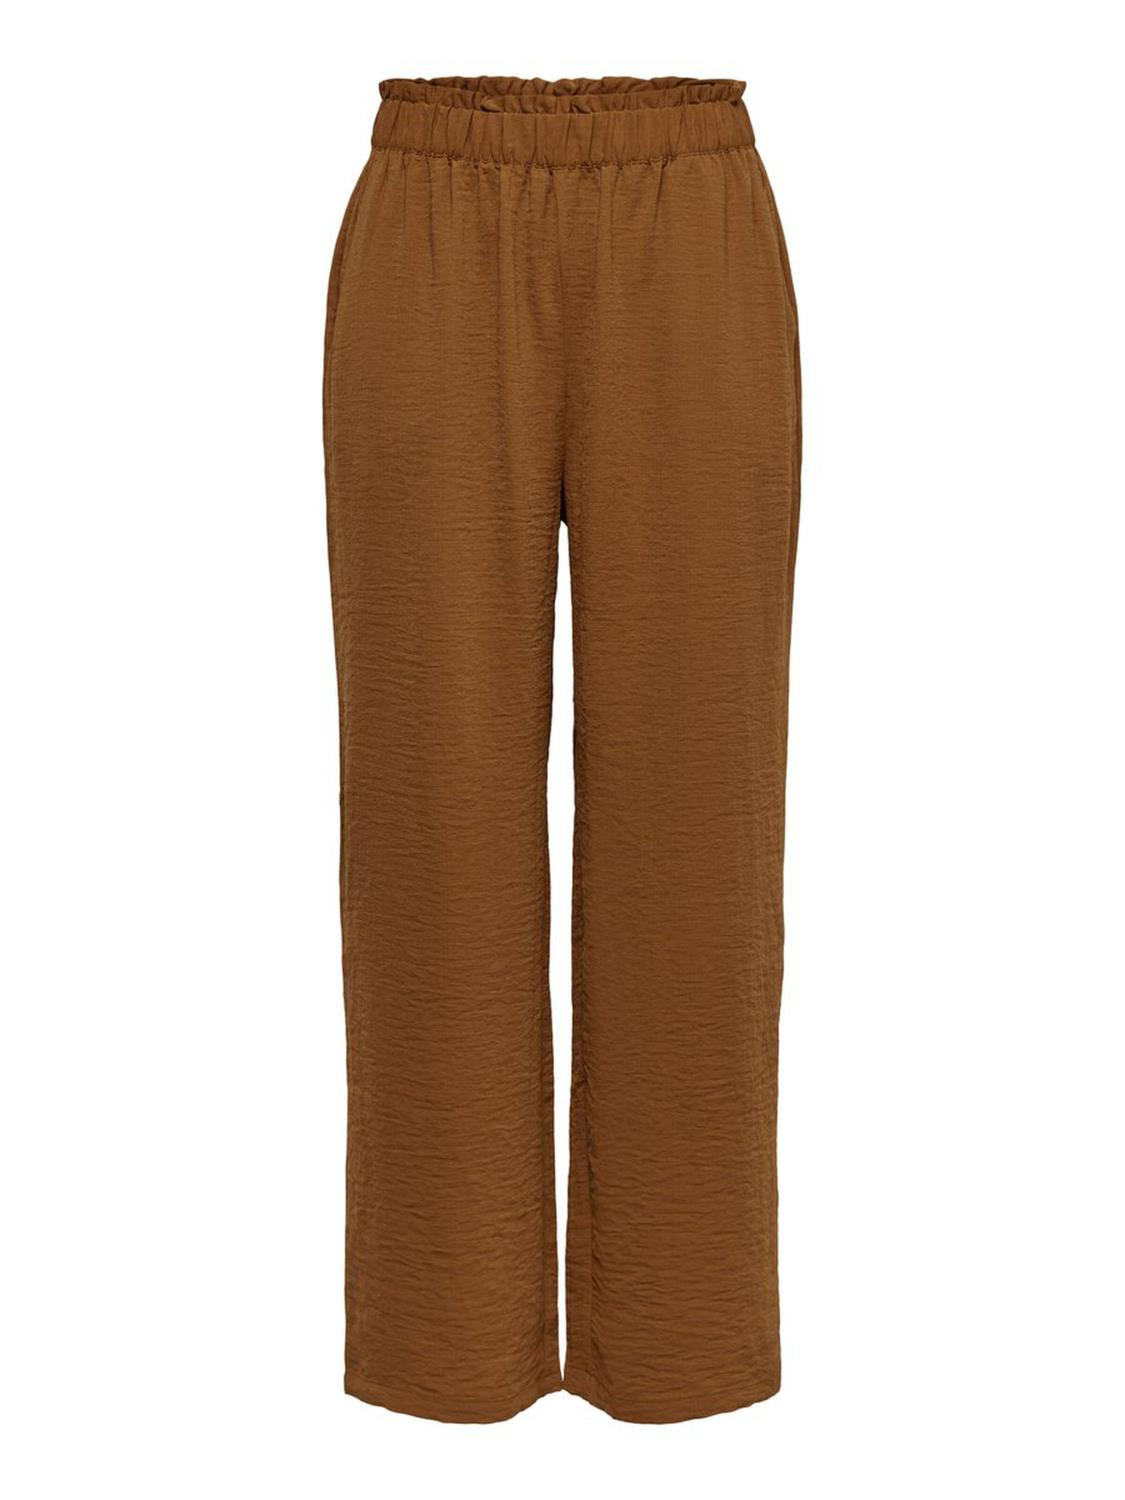 Jacqueline de Yong, Tina Highwaist Wide Pant, argan oil